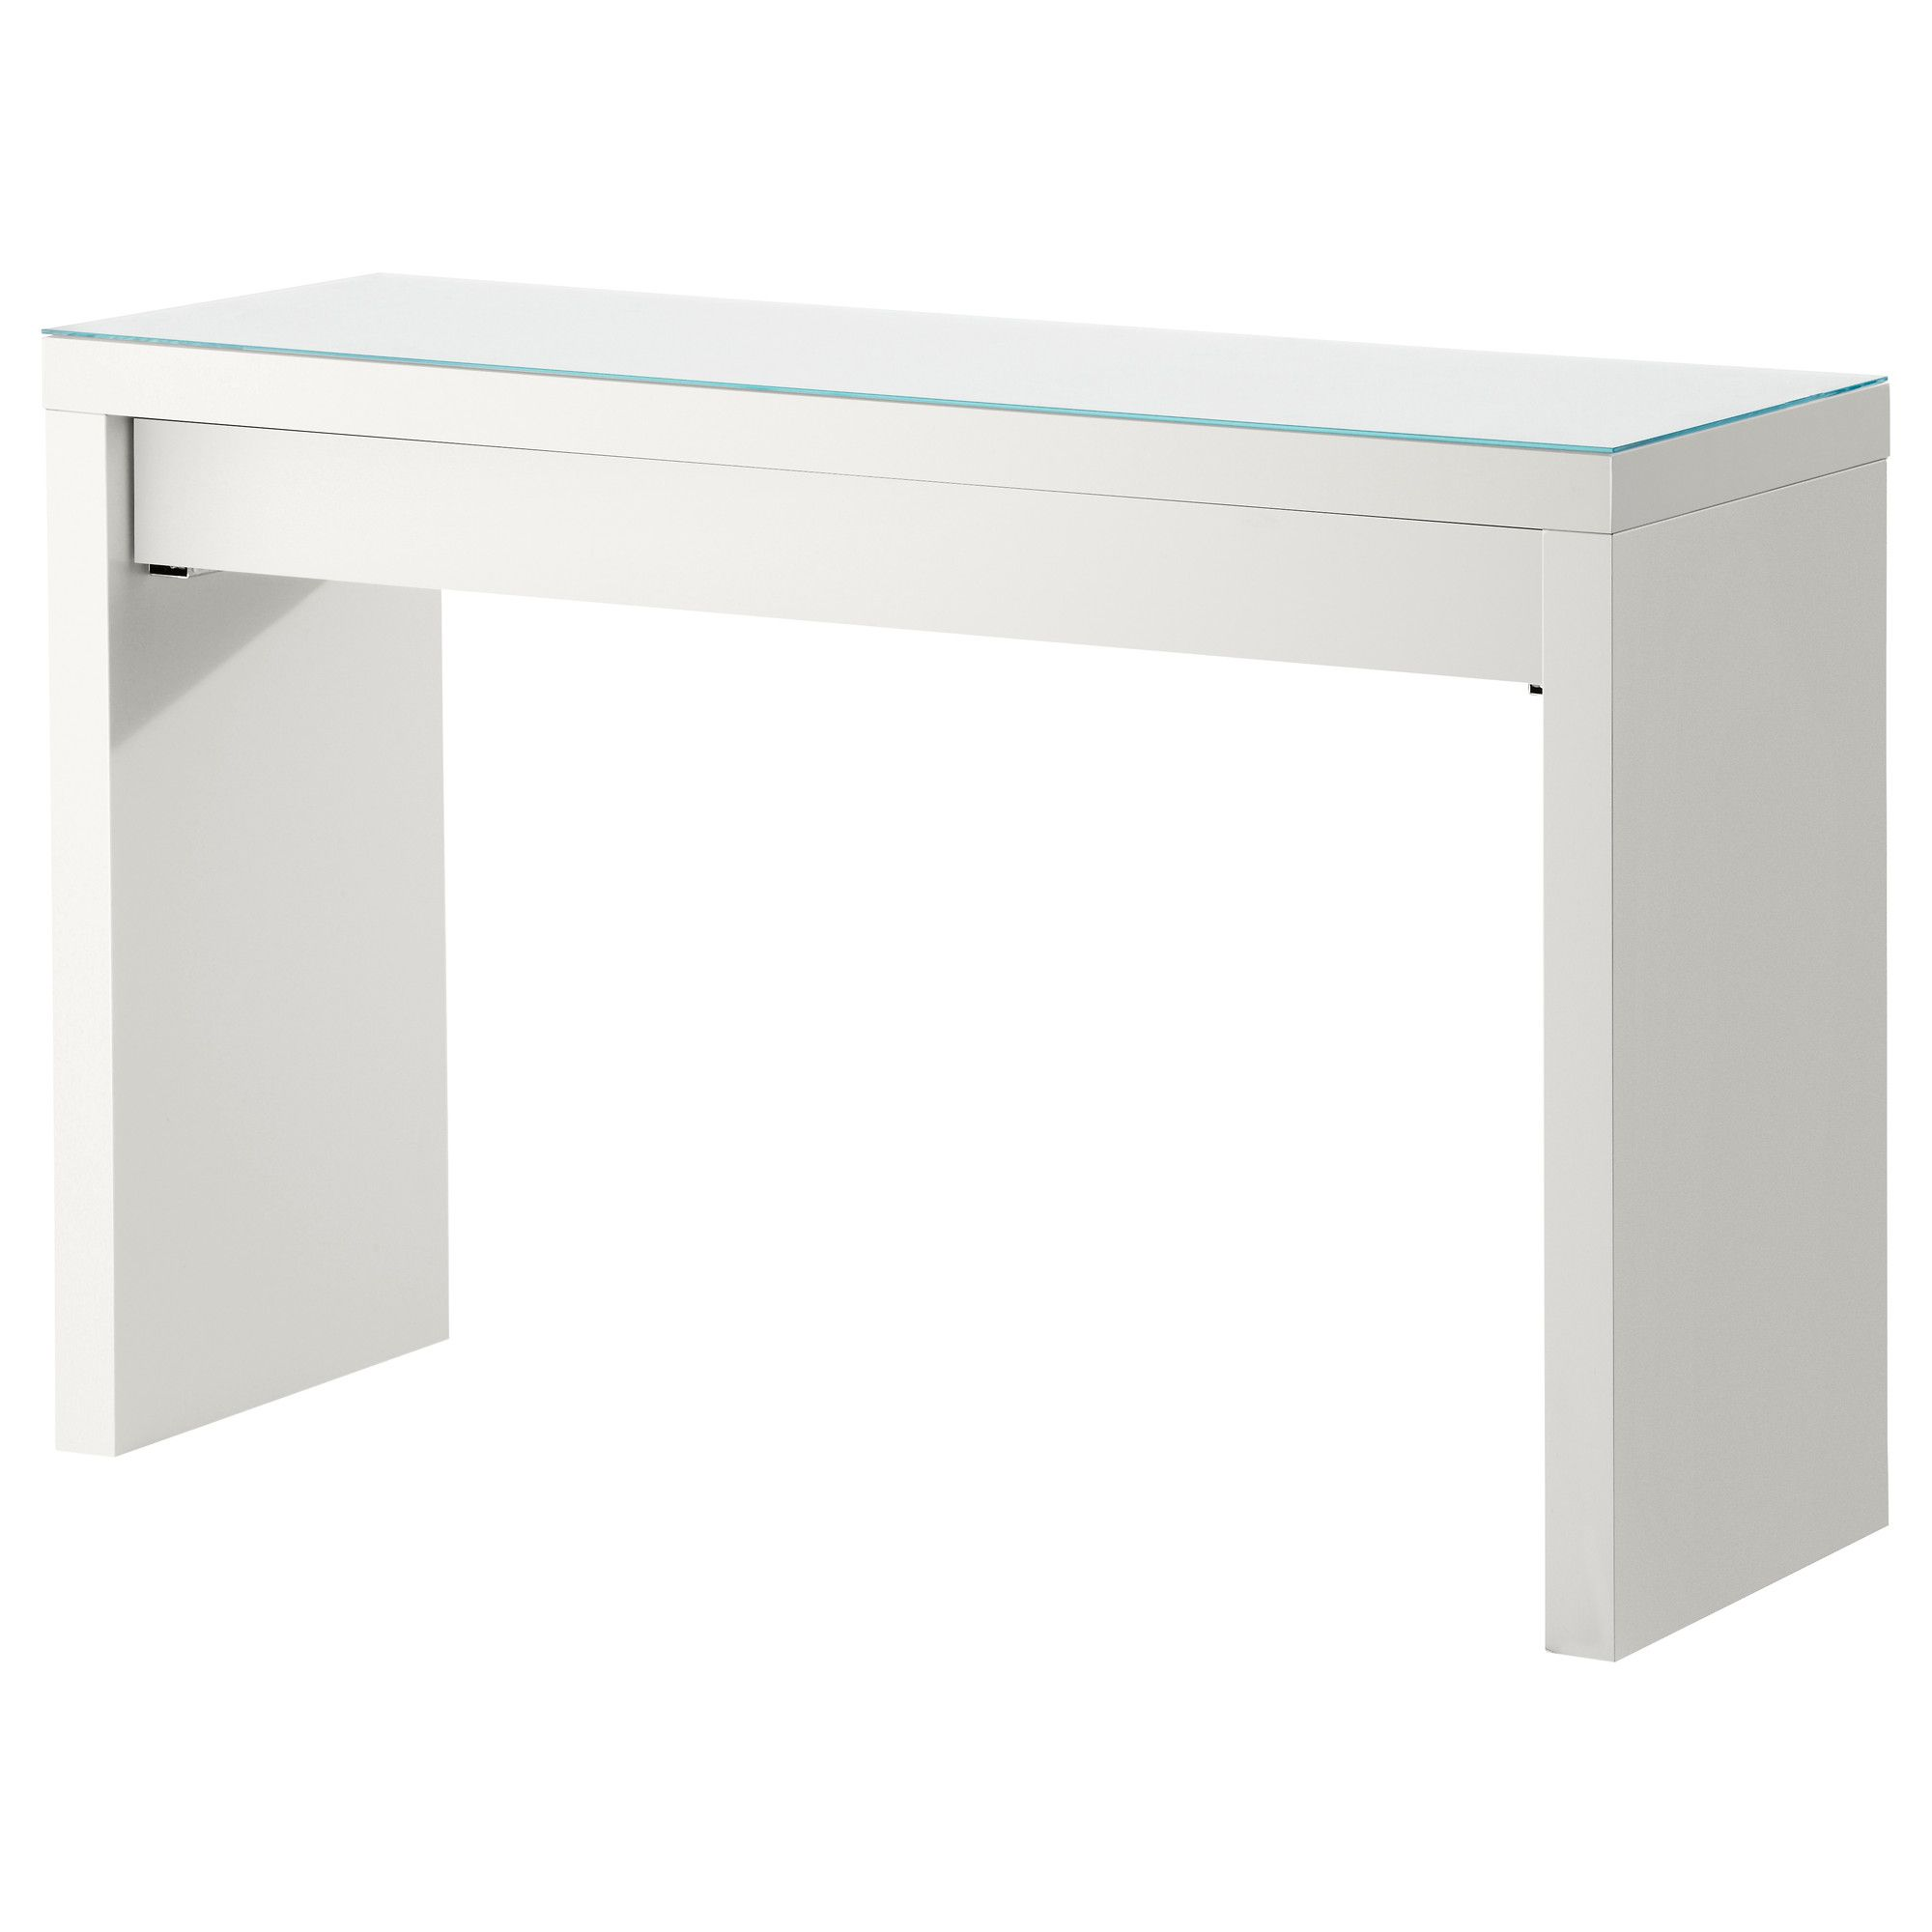 Malm dressing table white deco house och ikea - Mesa auxiliar malm ...